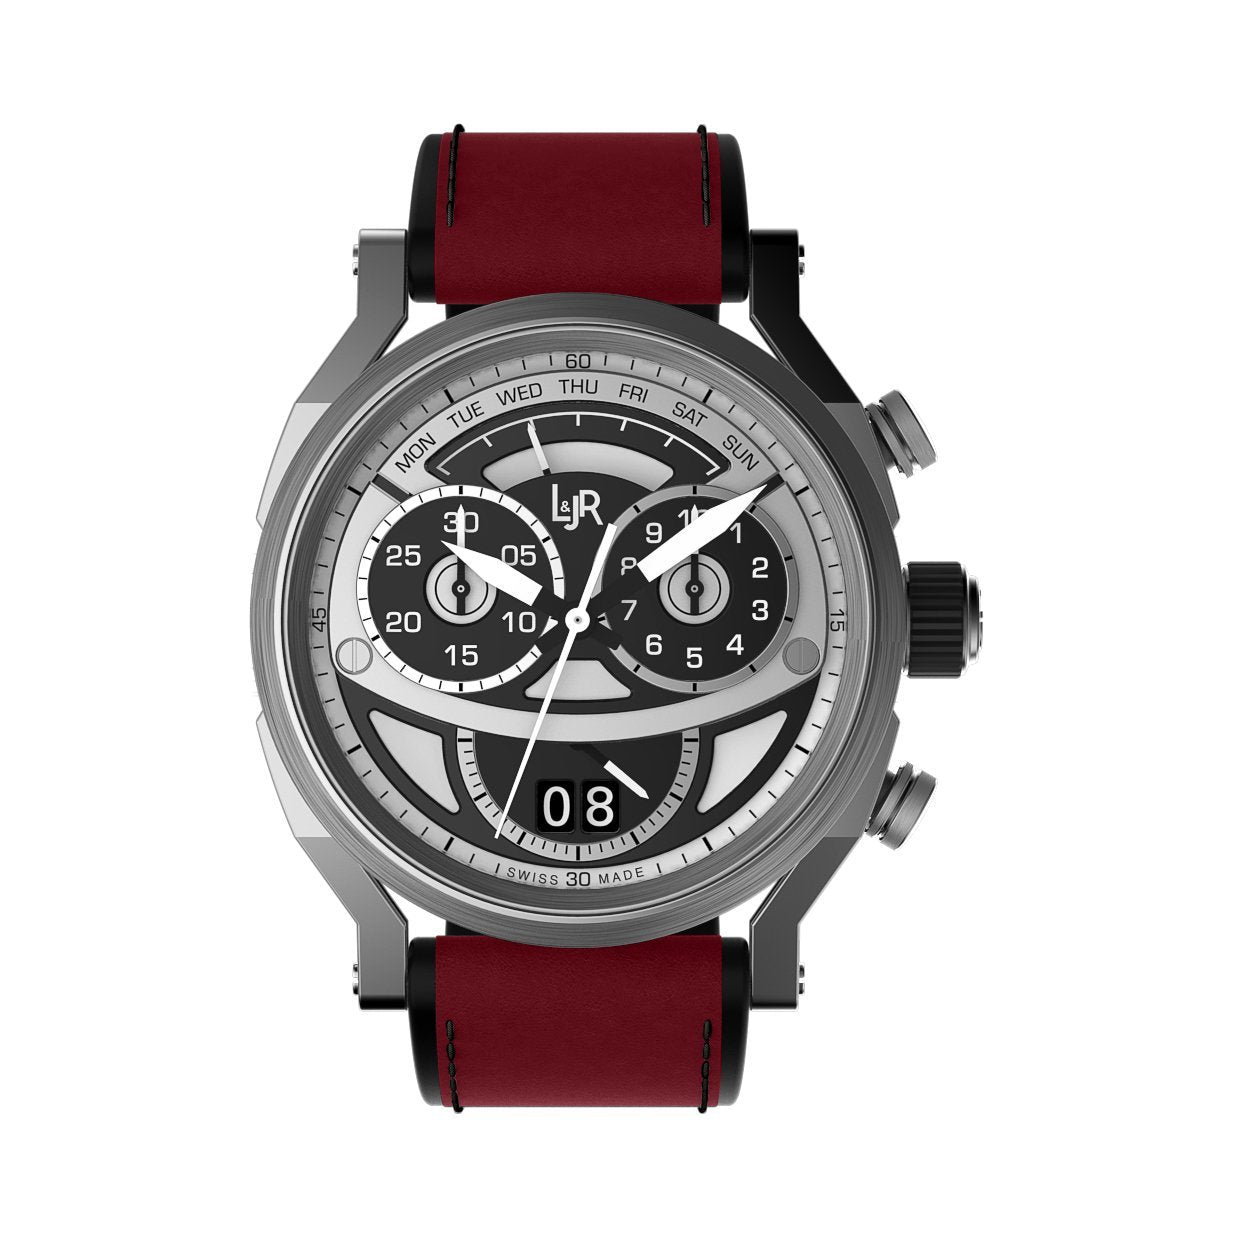 L&Jr Chronograph Day and Date 2 Tone Burgundy - Watches & Crystals